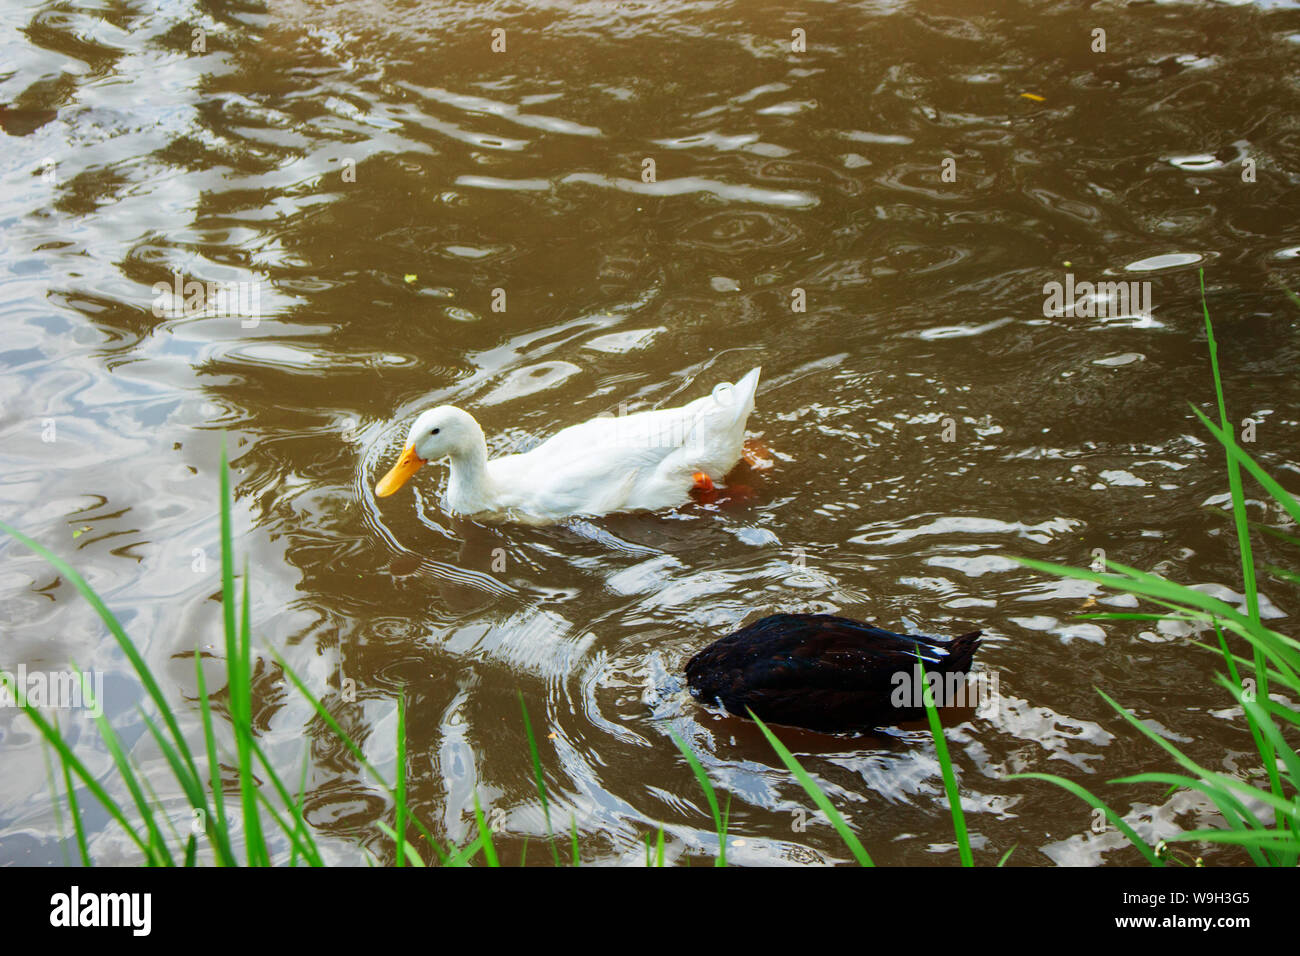 the white duck swim and the black duck head dive in murky river water Stock Photo